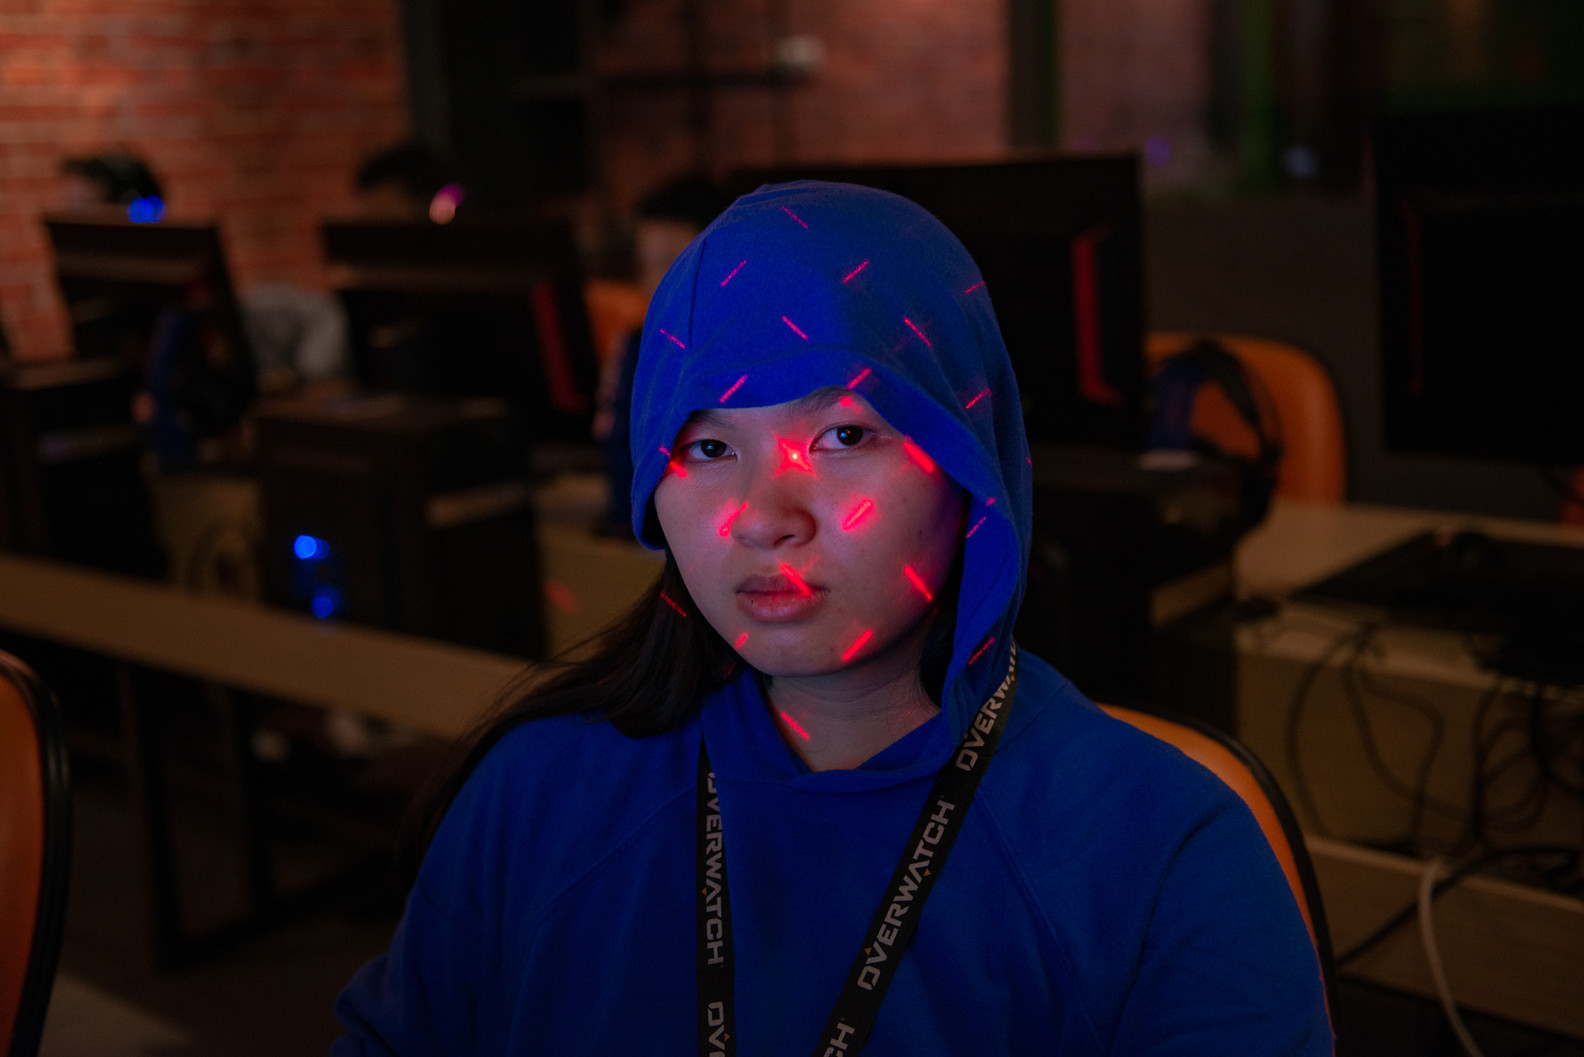 Virtual Insanity: Inside The Life of Pro-Gamer